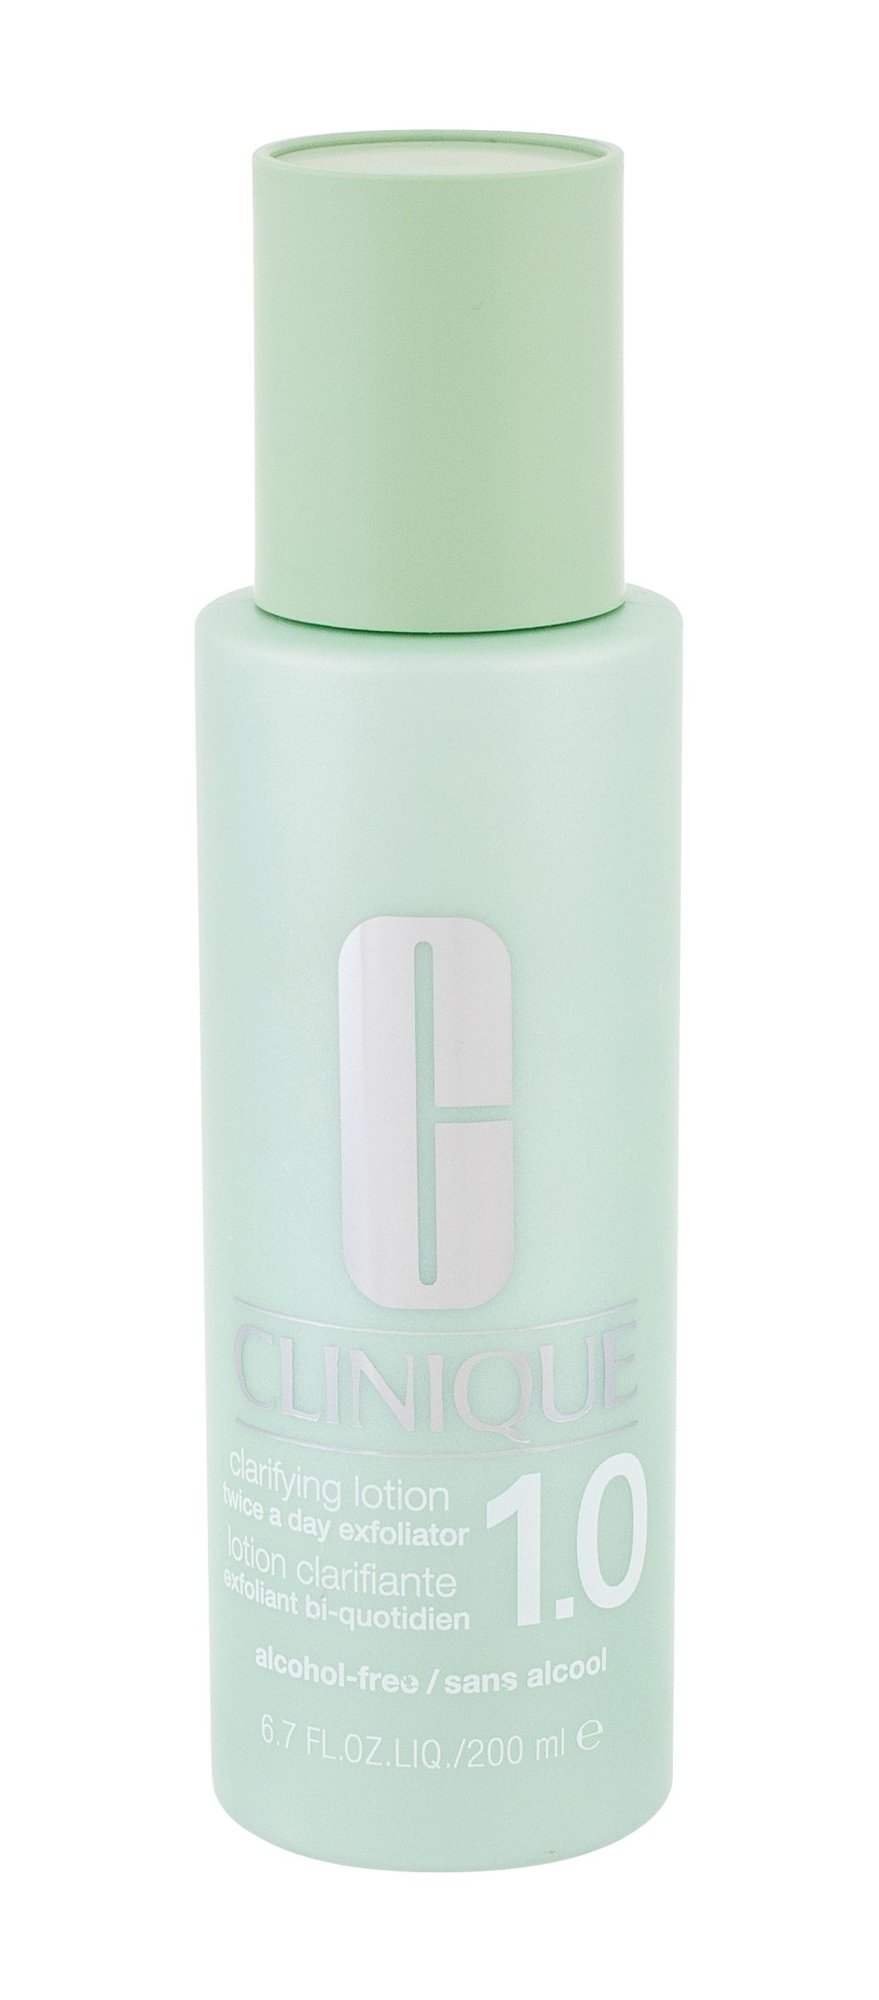 Clinique 3-Step Skin Care 1.0 Peeling 200ml